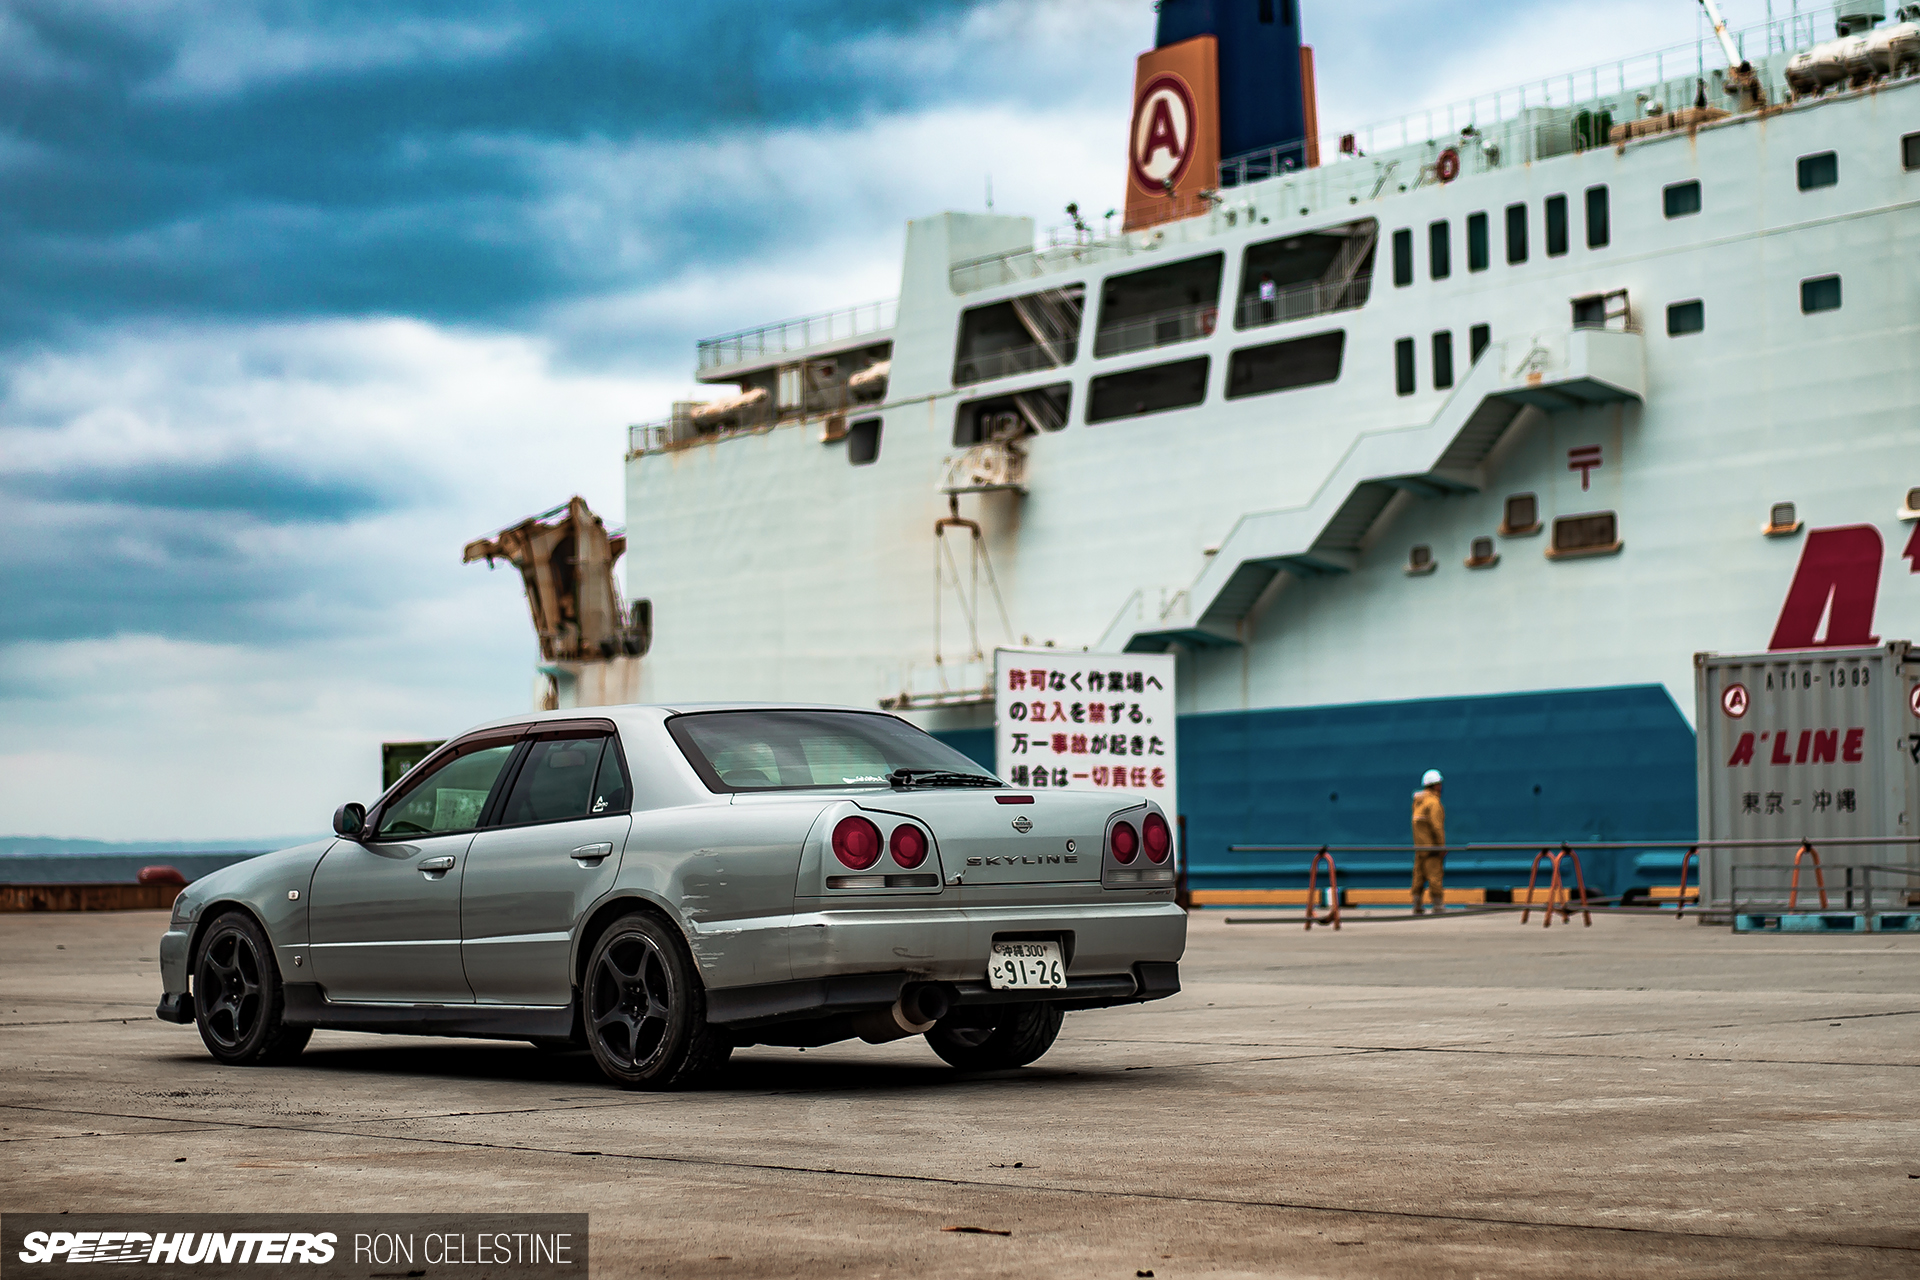 The 3,000+km Journey Getting The Newest Speedhunters Project CarHome